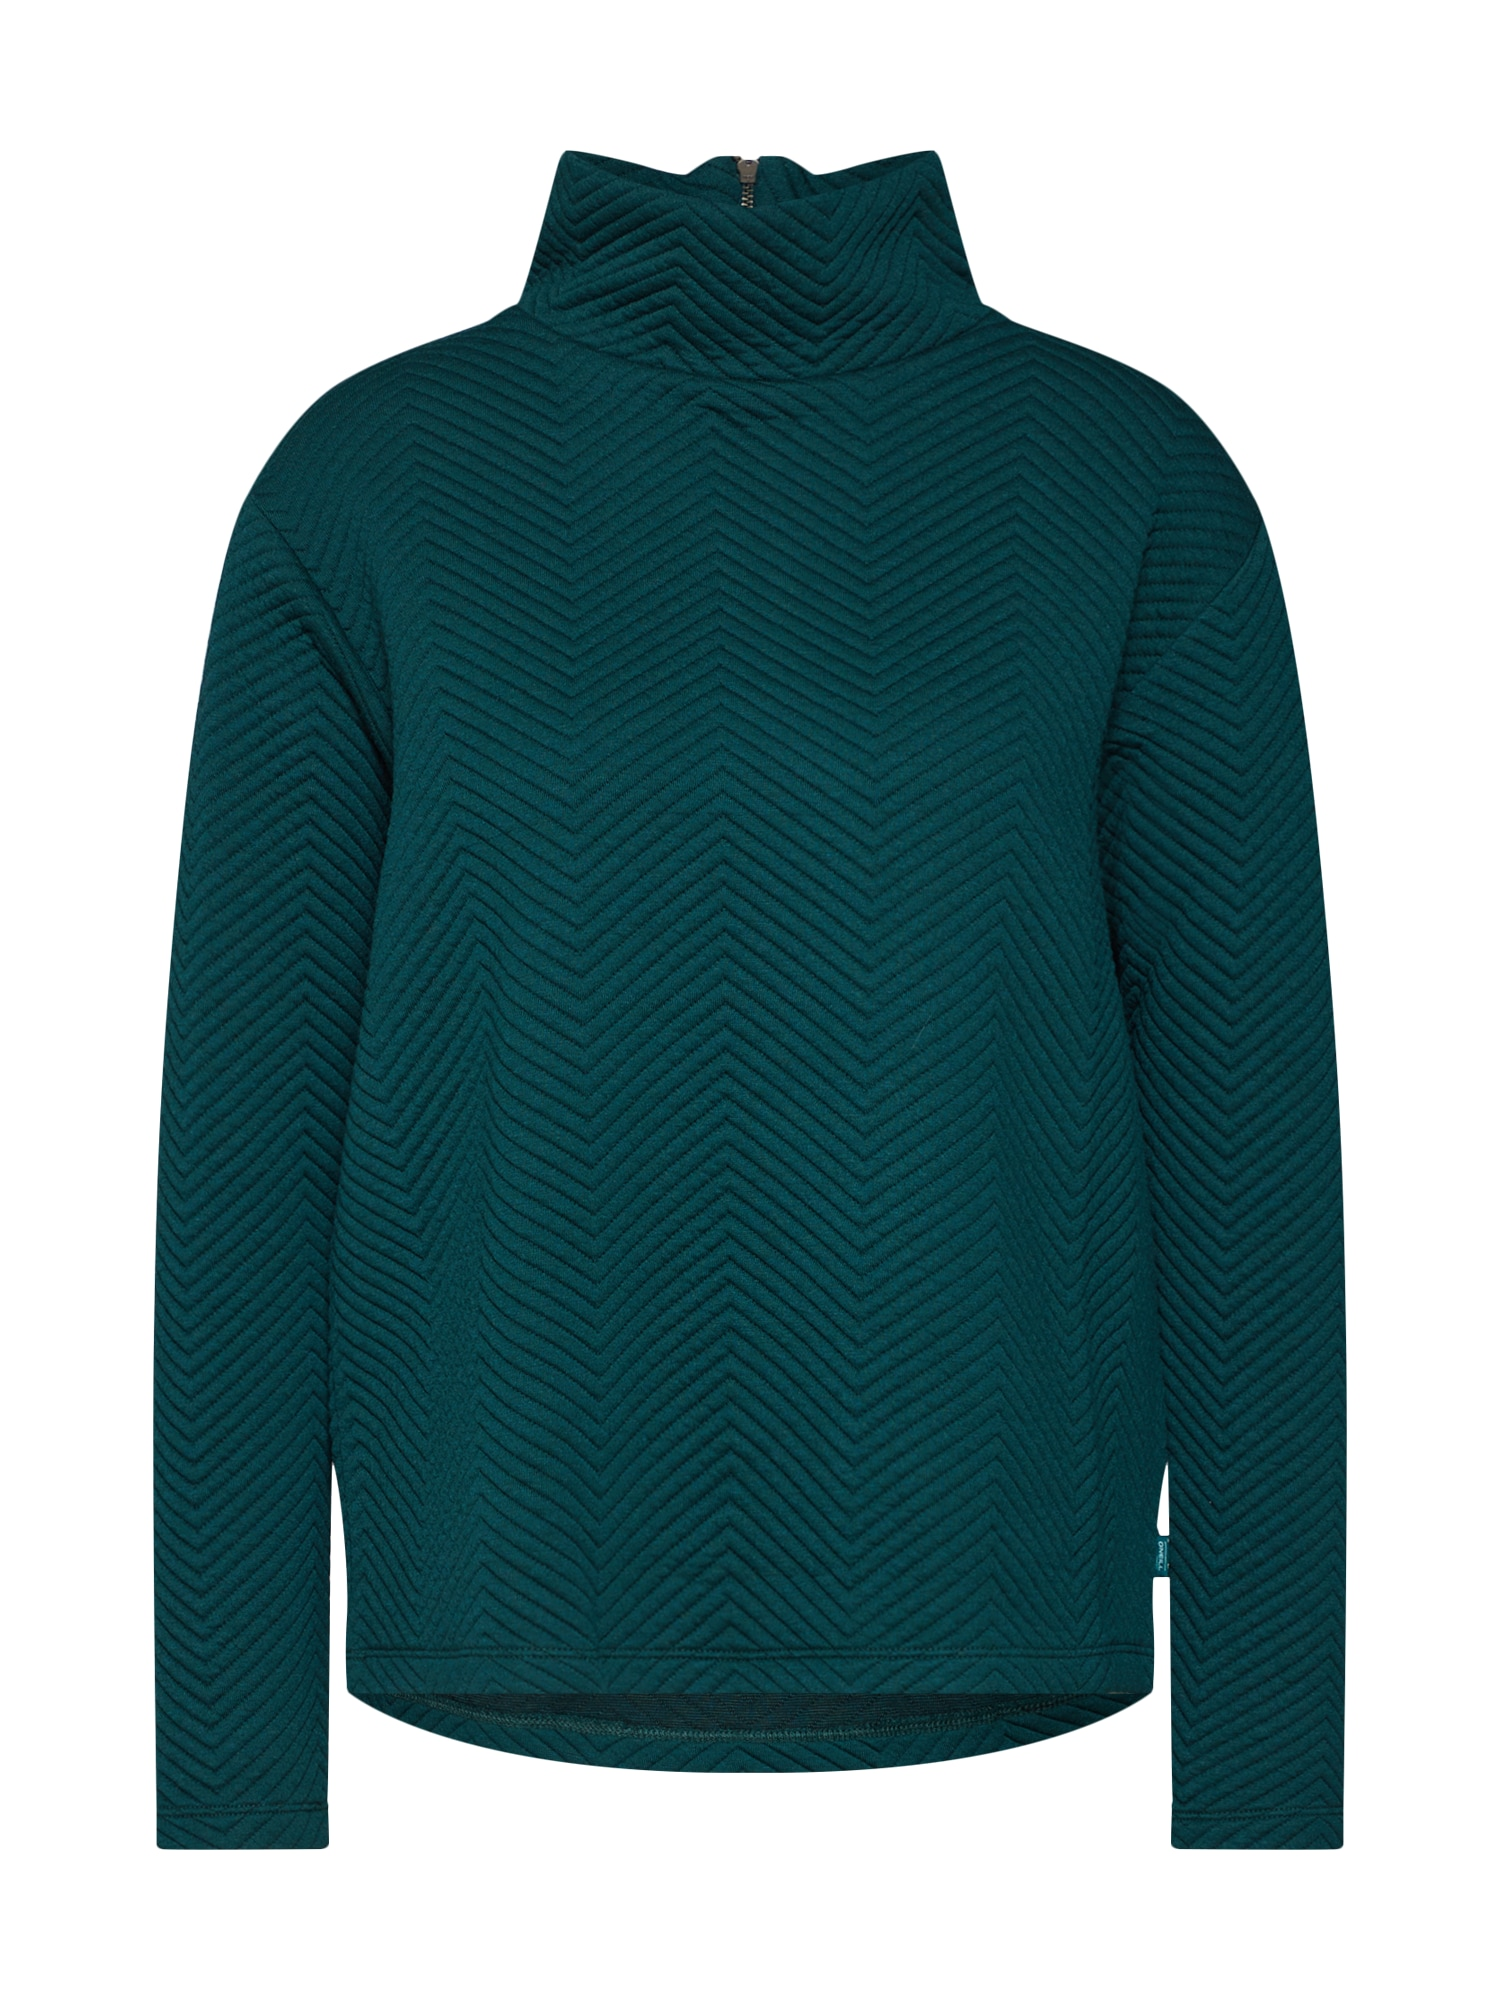 O'NEILL Mikina 'LW QUILTED SWEATSHIRT'  jedle